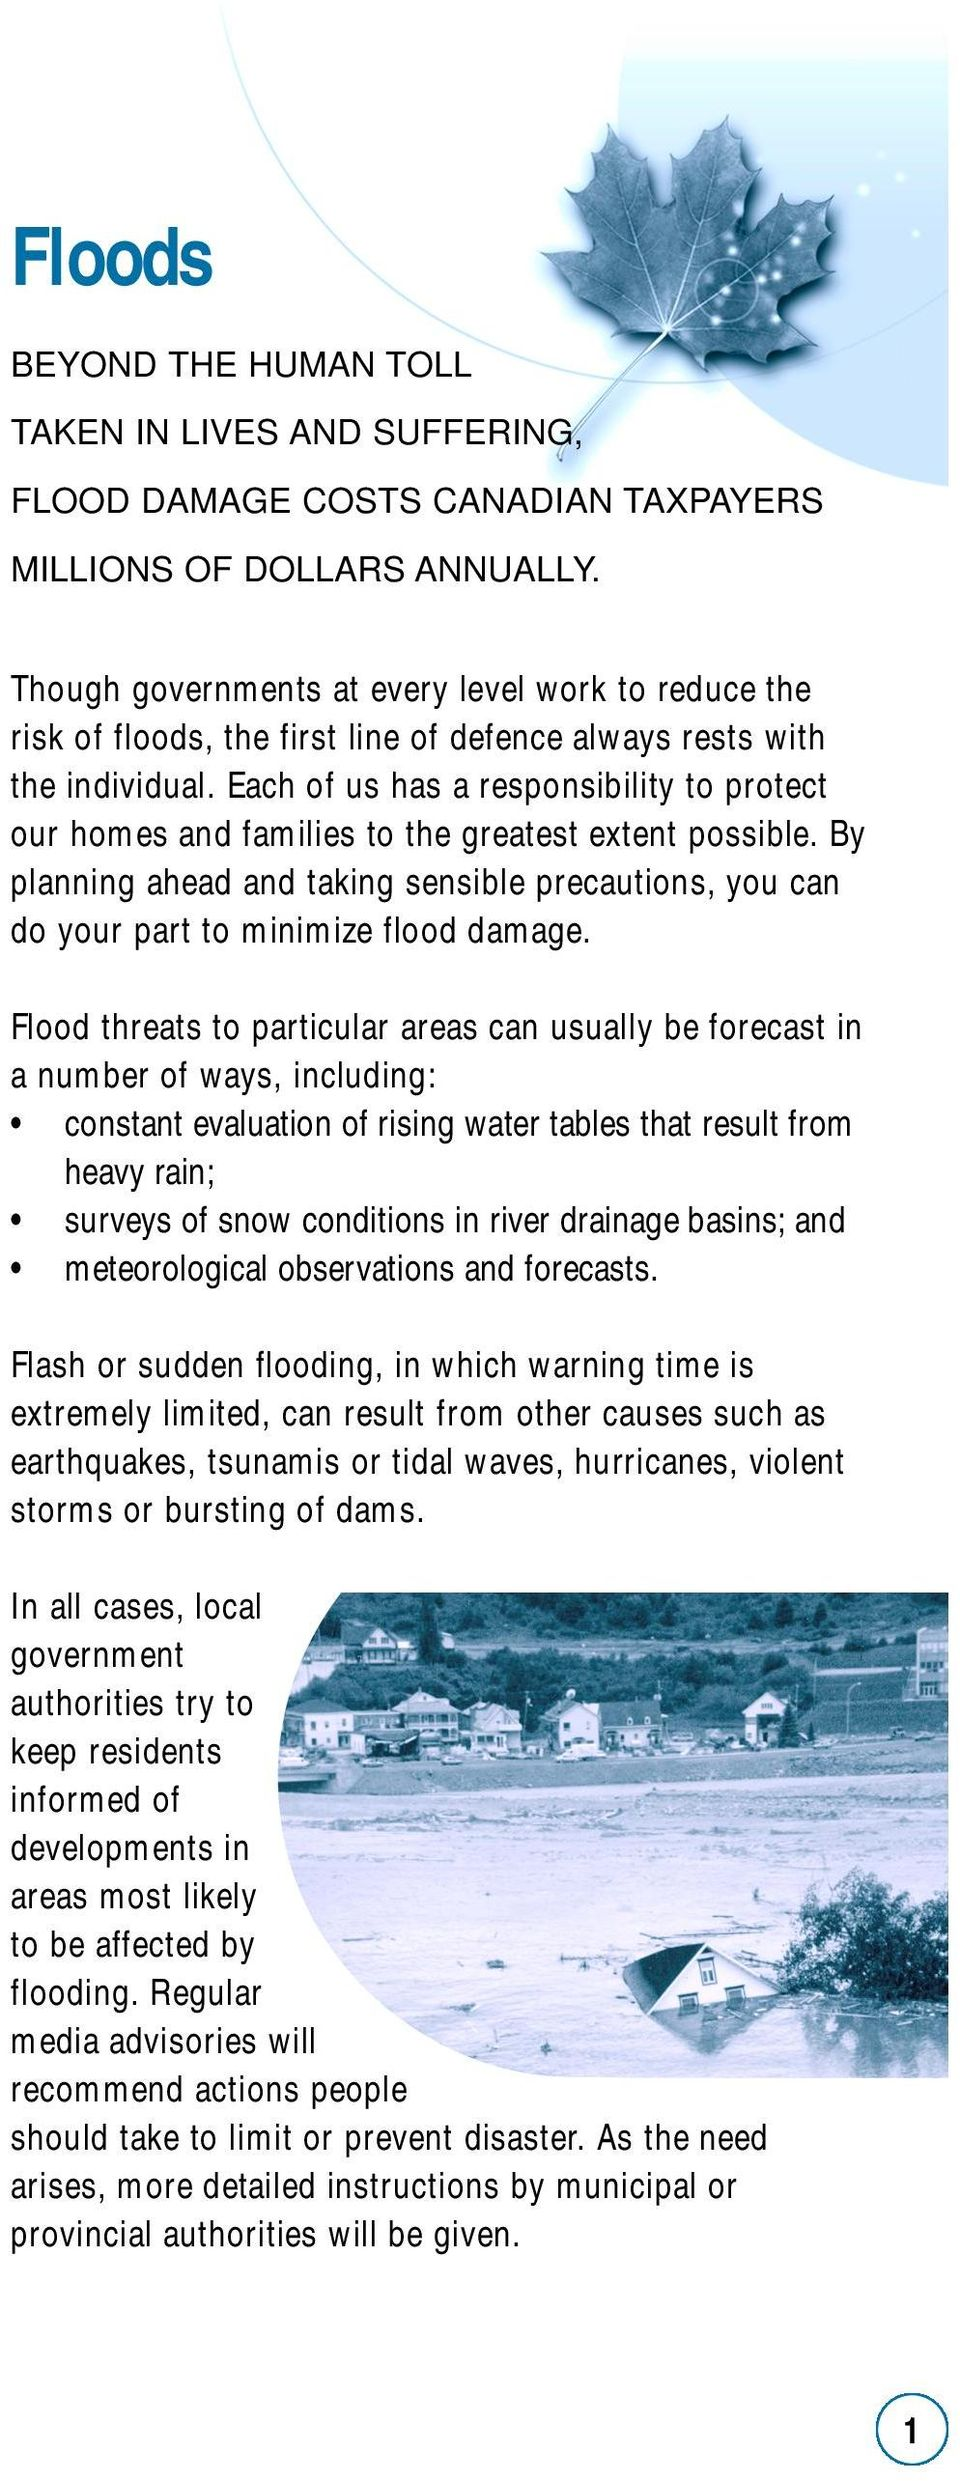 Each of us has a responsibility to protect our homes and families to the greatest extent possible. By planning ahead and taking sensible precautions, you can do your part to minimize flood damage.